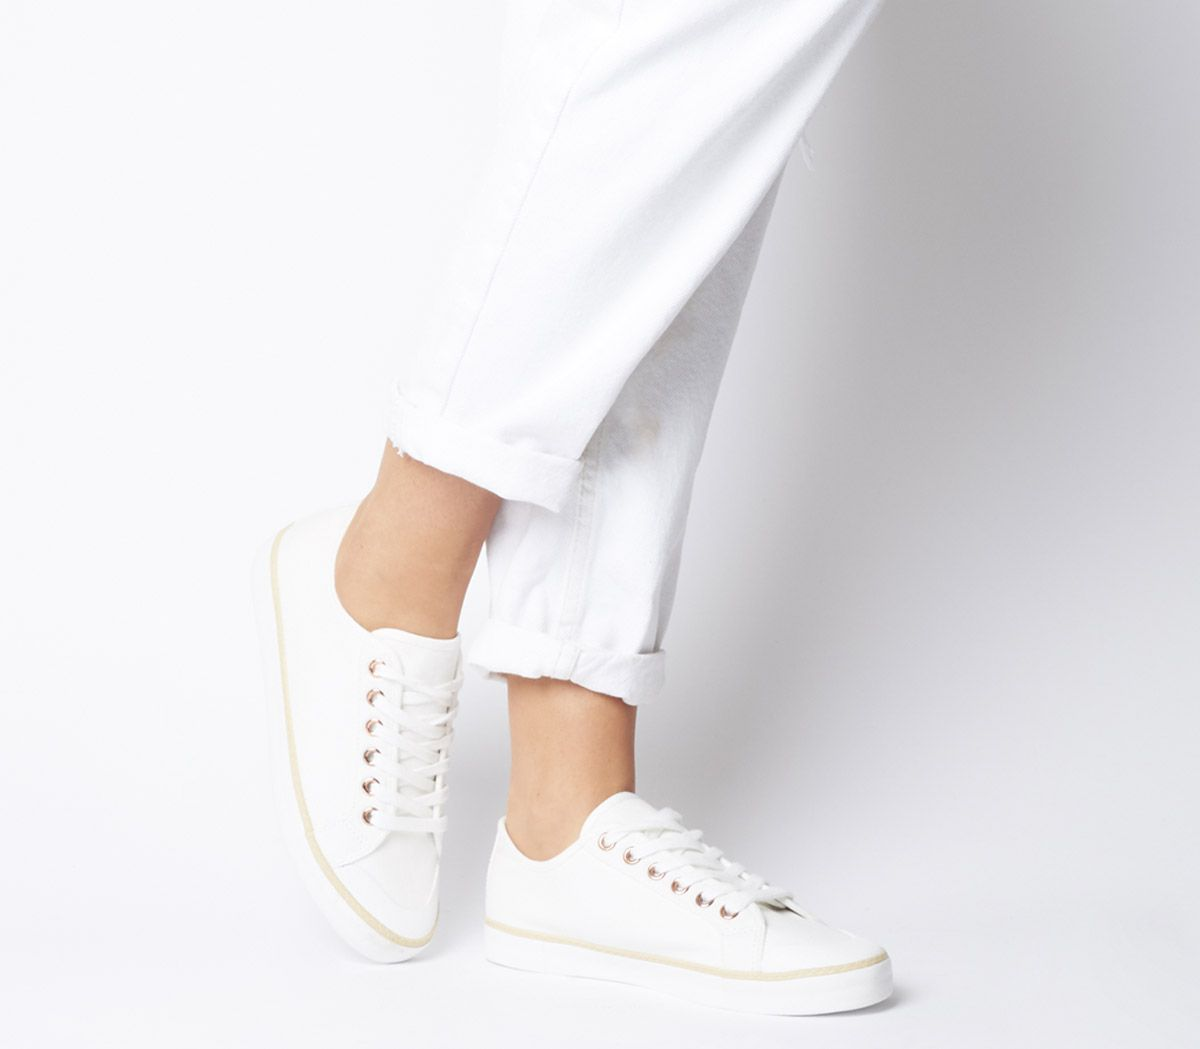 d25f8dbb9d Office Fragment Rope Rand Lace Up Trainers White Canvas - Flats